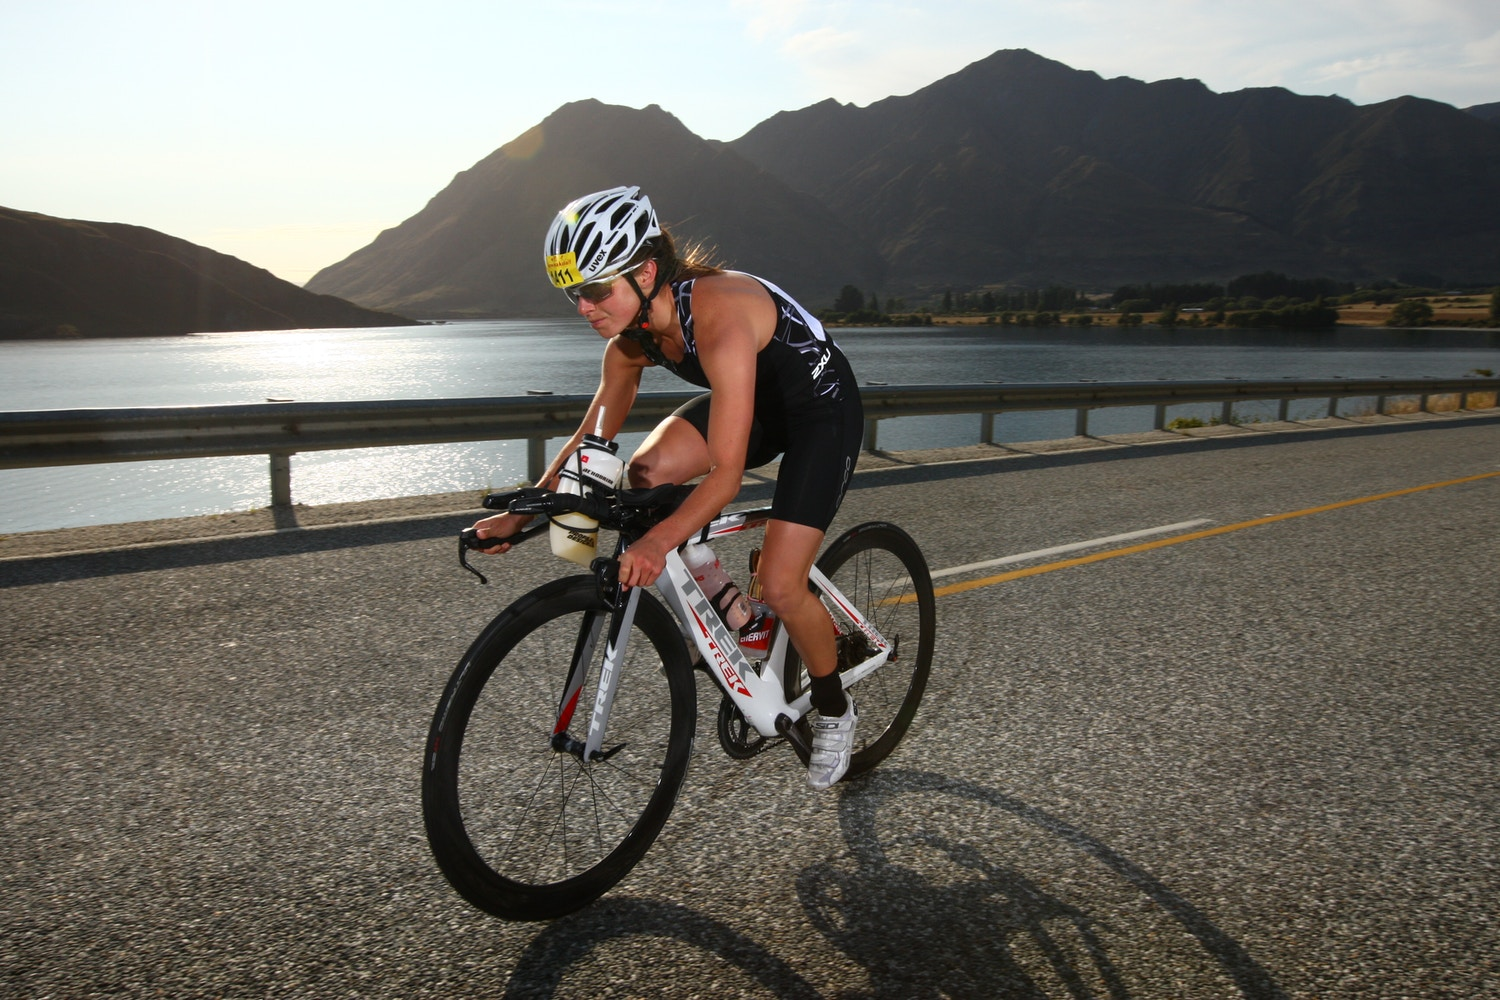 12 Weeks to Prepare for an Ironman?